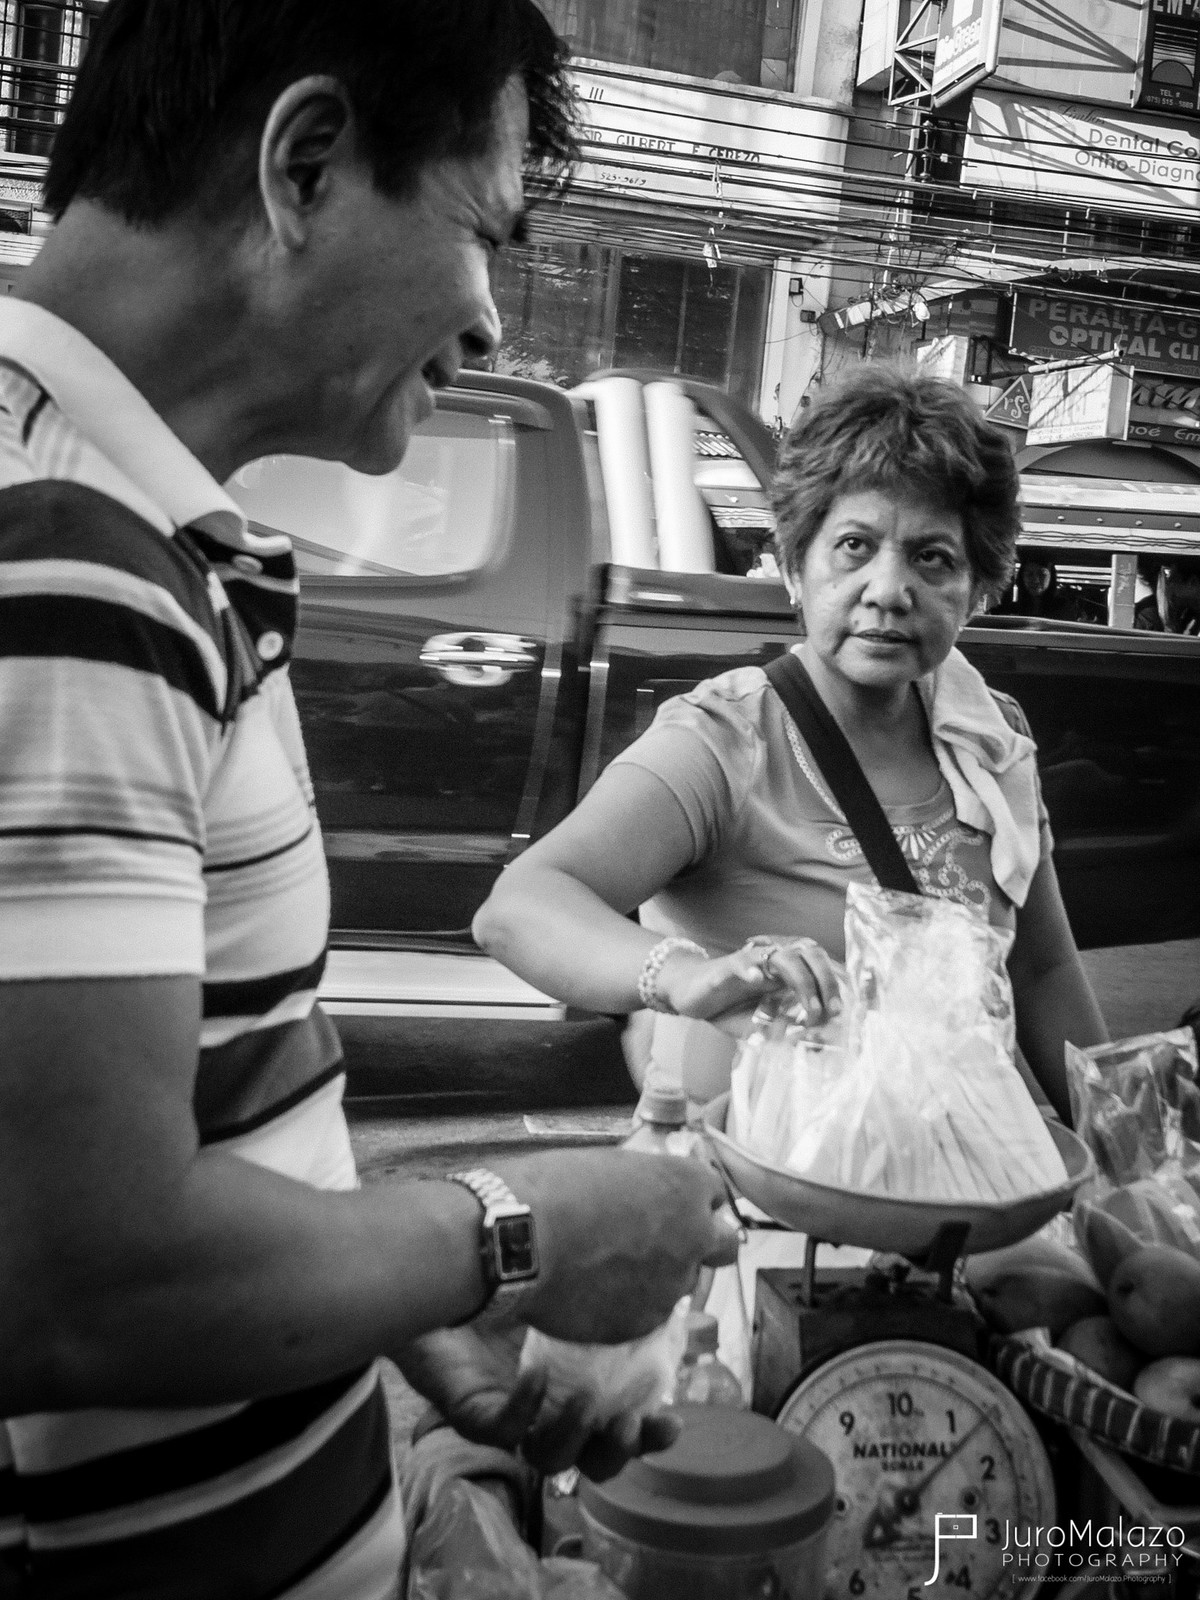 One Point Five. (Out on the Streets: Street Photography by Juro Malazo)